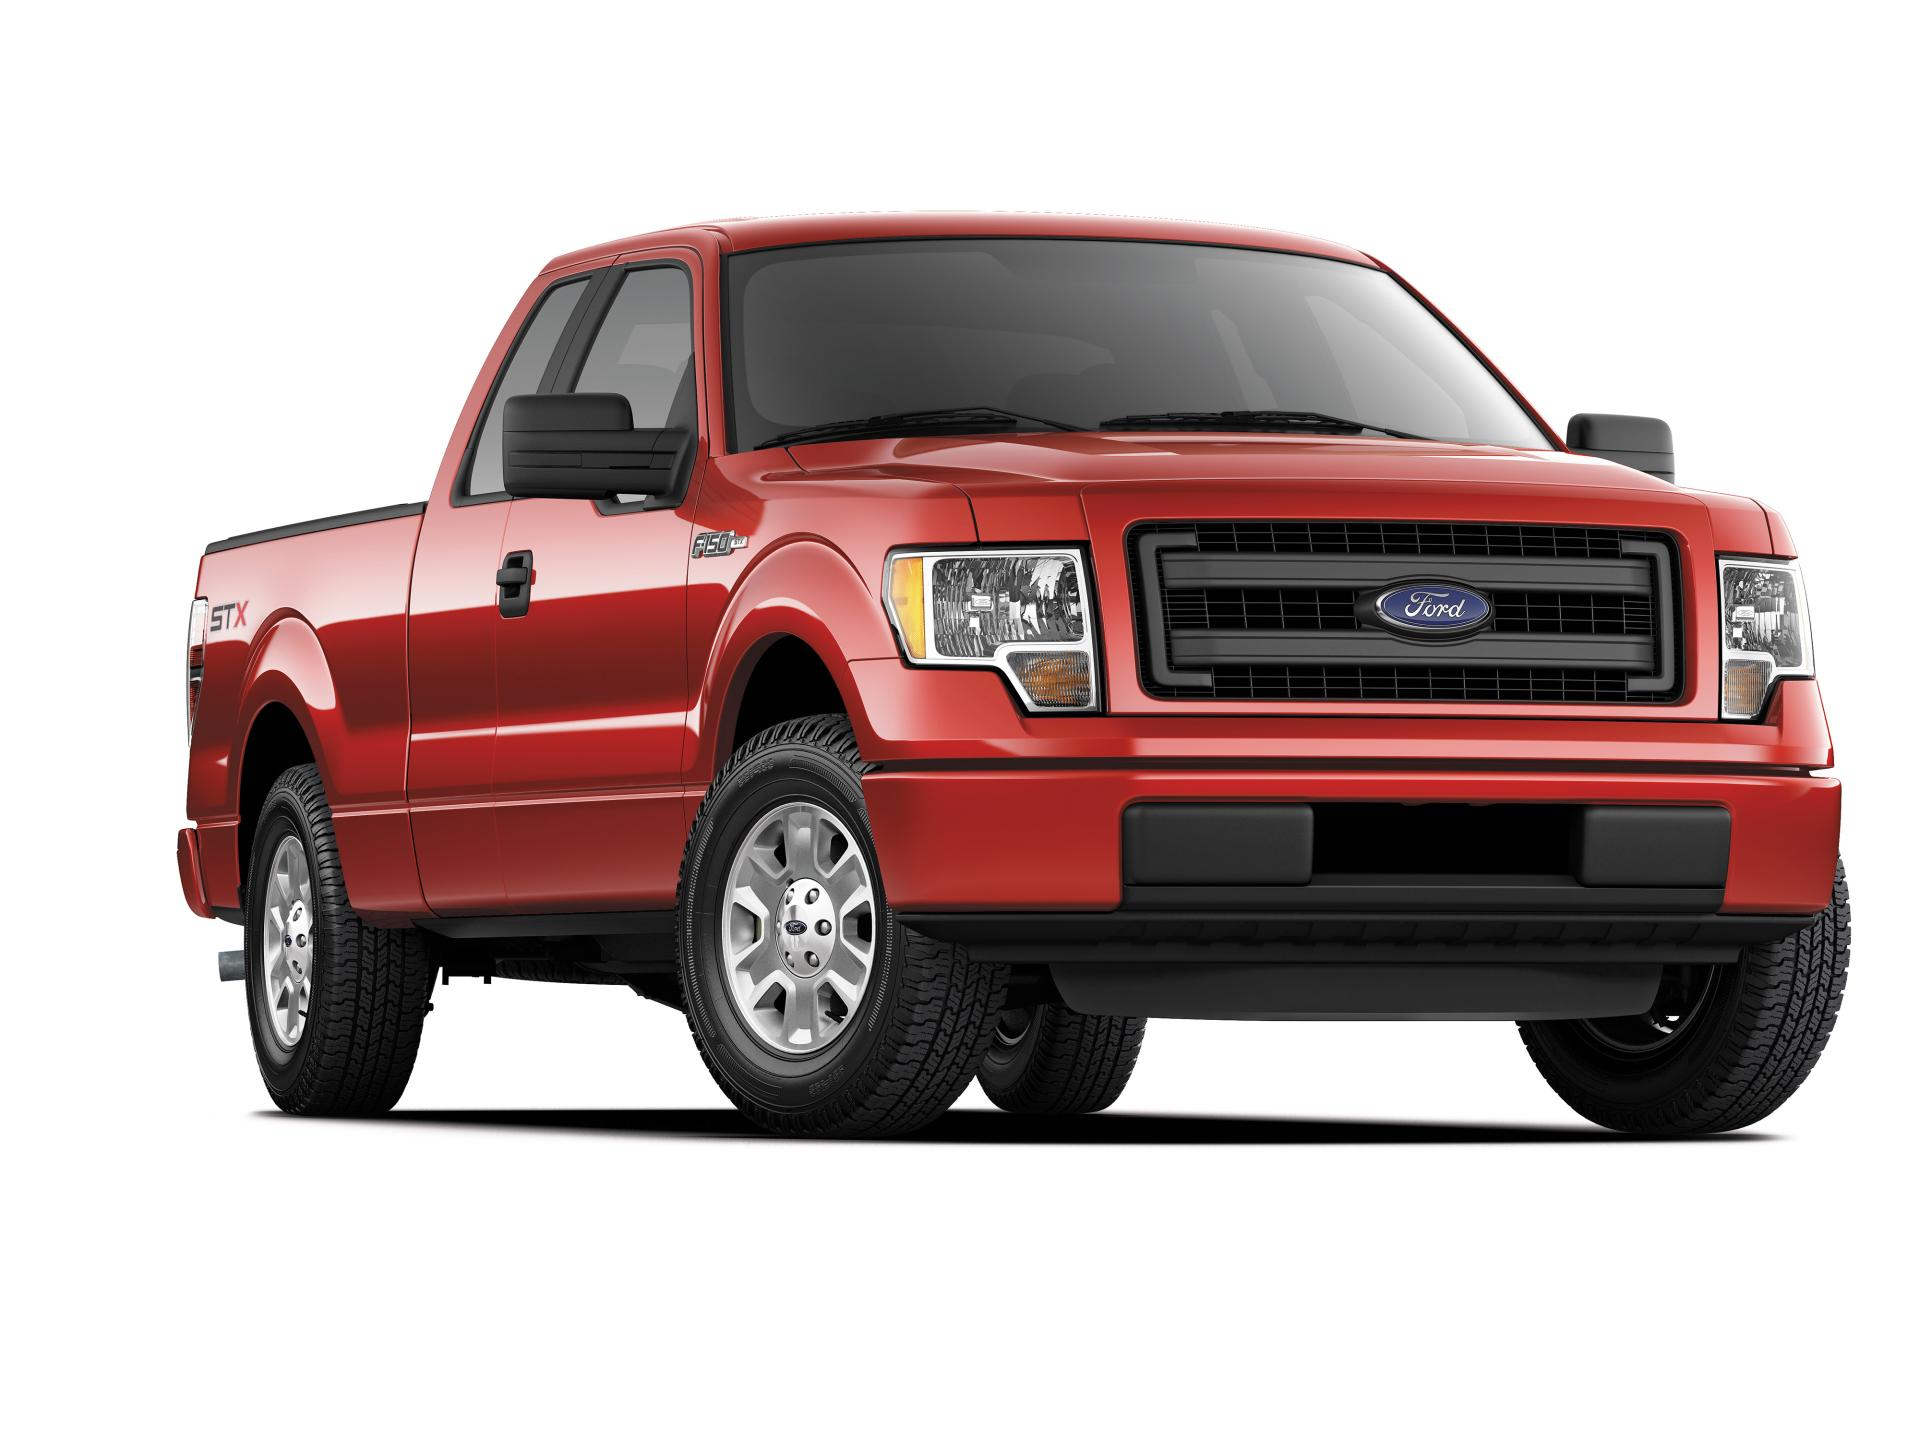 2014 ford f 150 stx news and information conceptcarz com